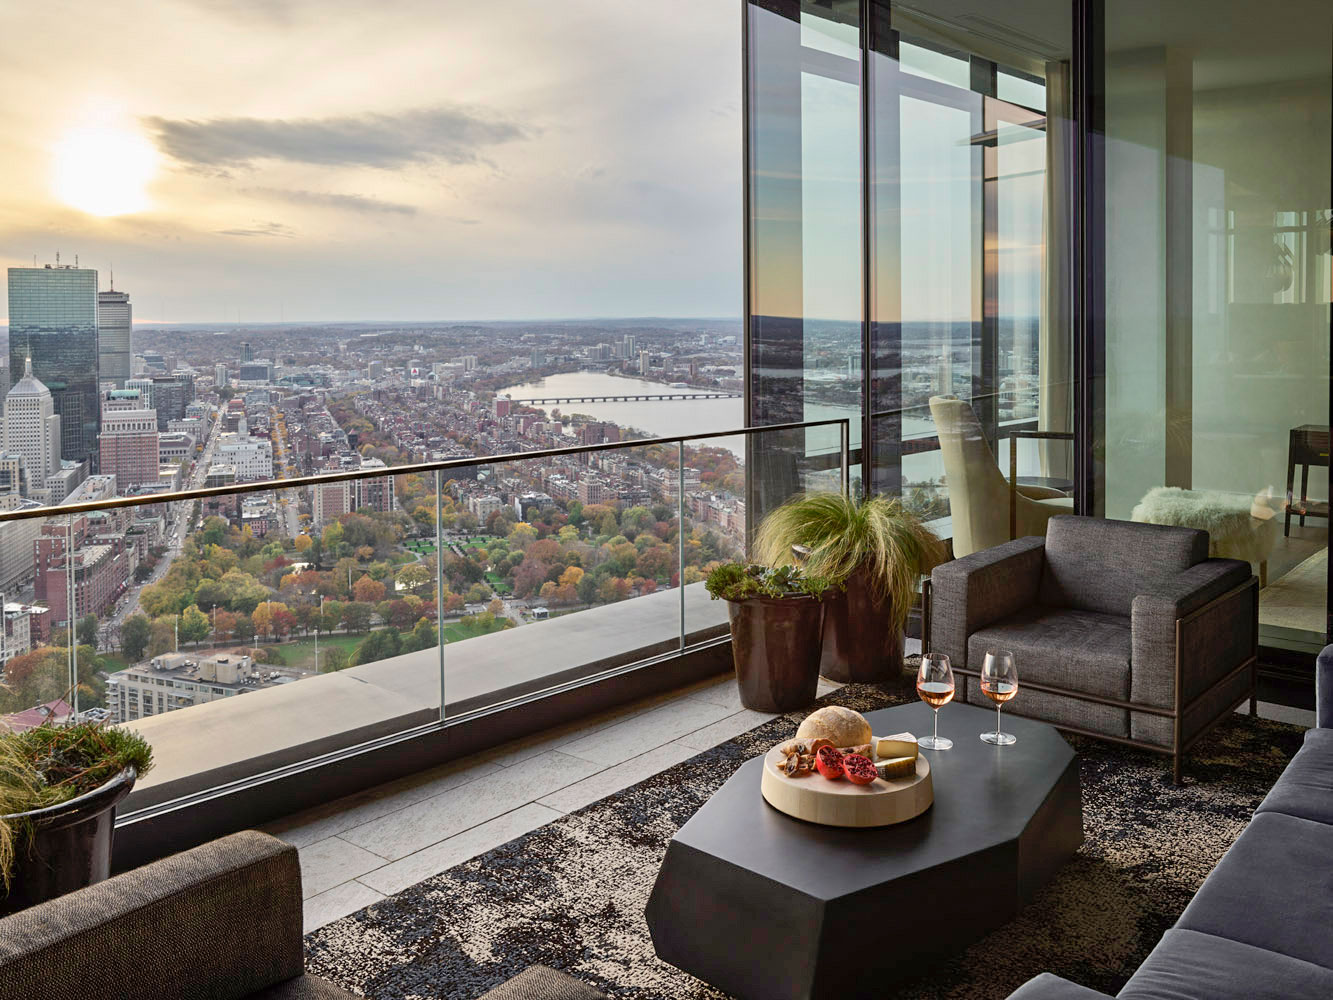 Custom Boston high-rise residence built by brookes + hill builders